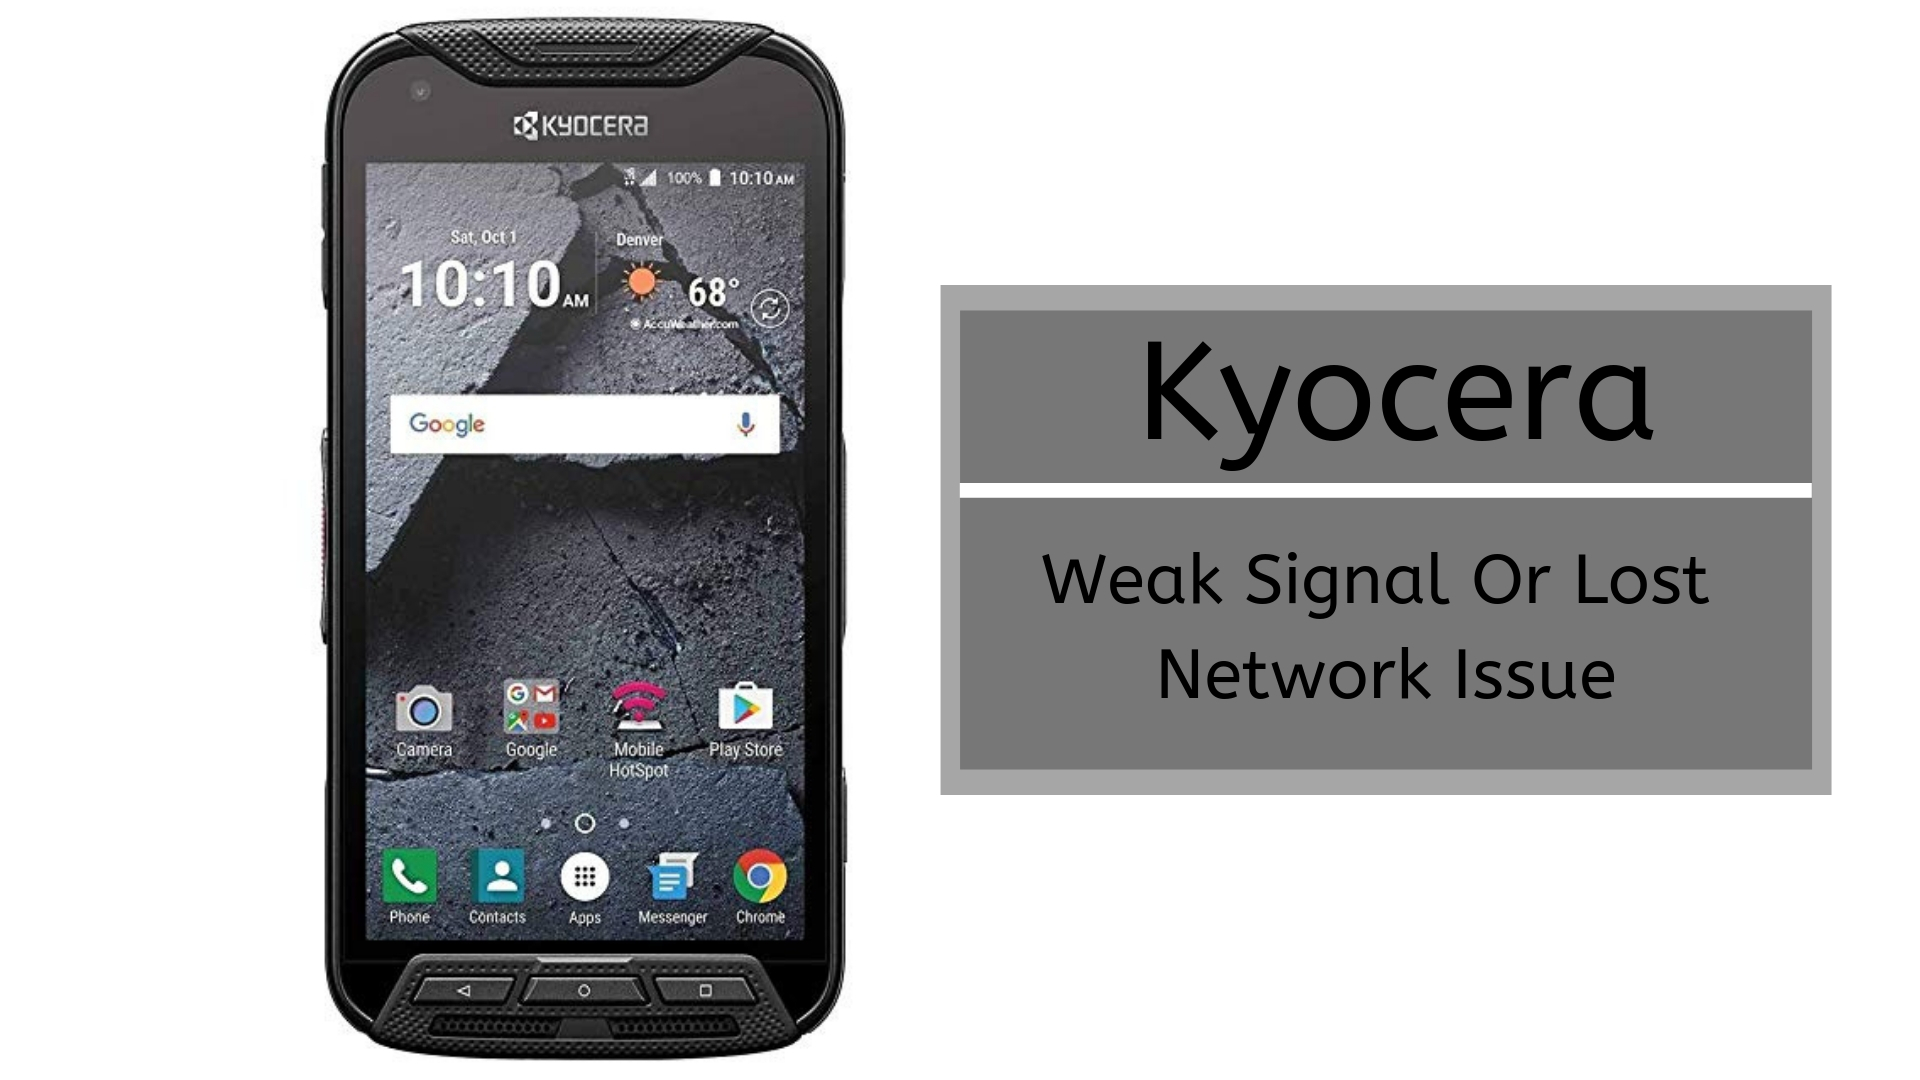 Guide to Fix Kyocera Weak Signal or Lost Network Issue